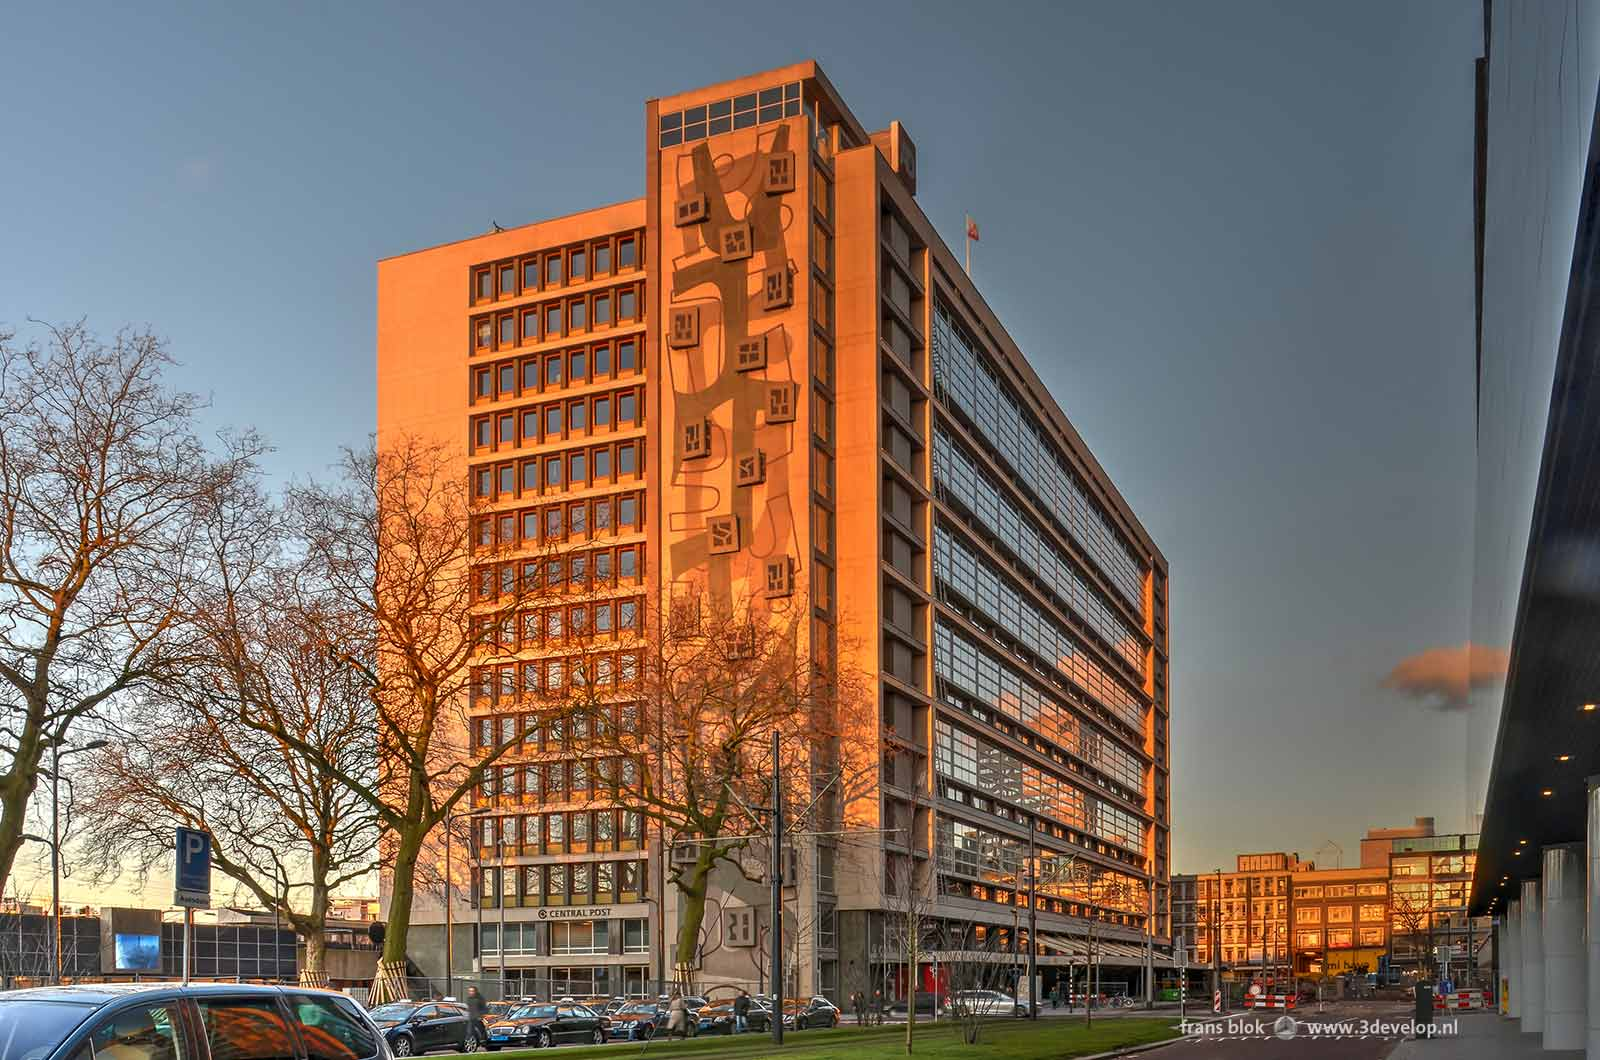 The former Railway Station Post Office, nowadays Central Post, on Delftsestraat in Rotterdam, photographed during the golden hour